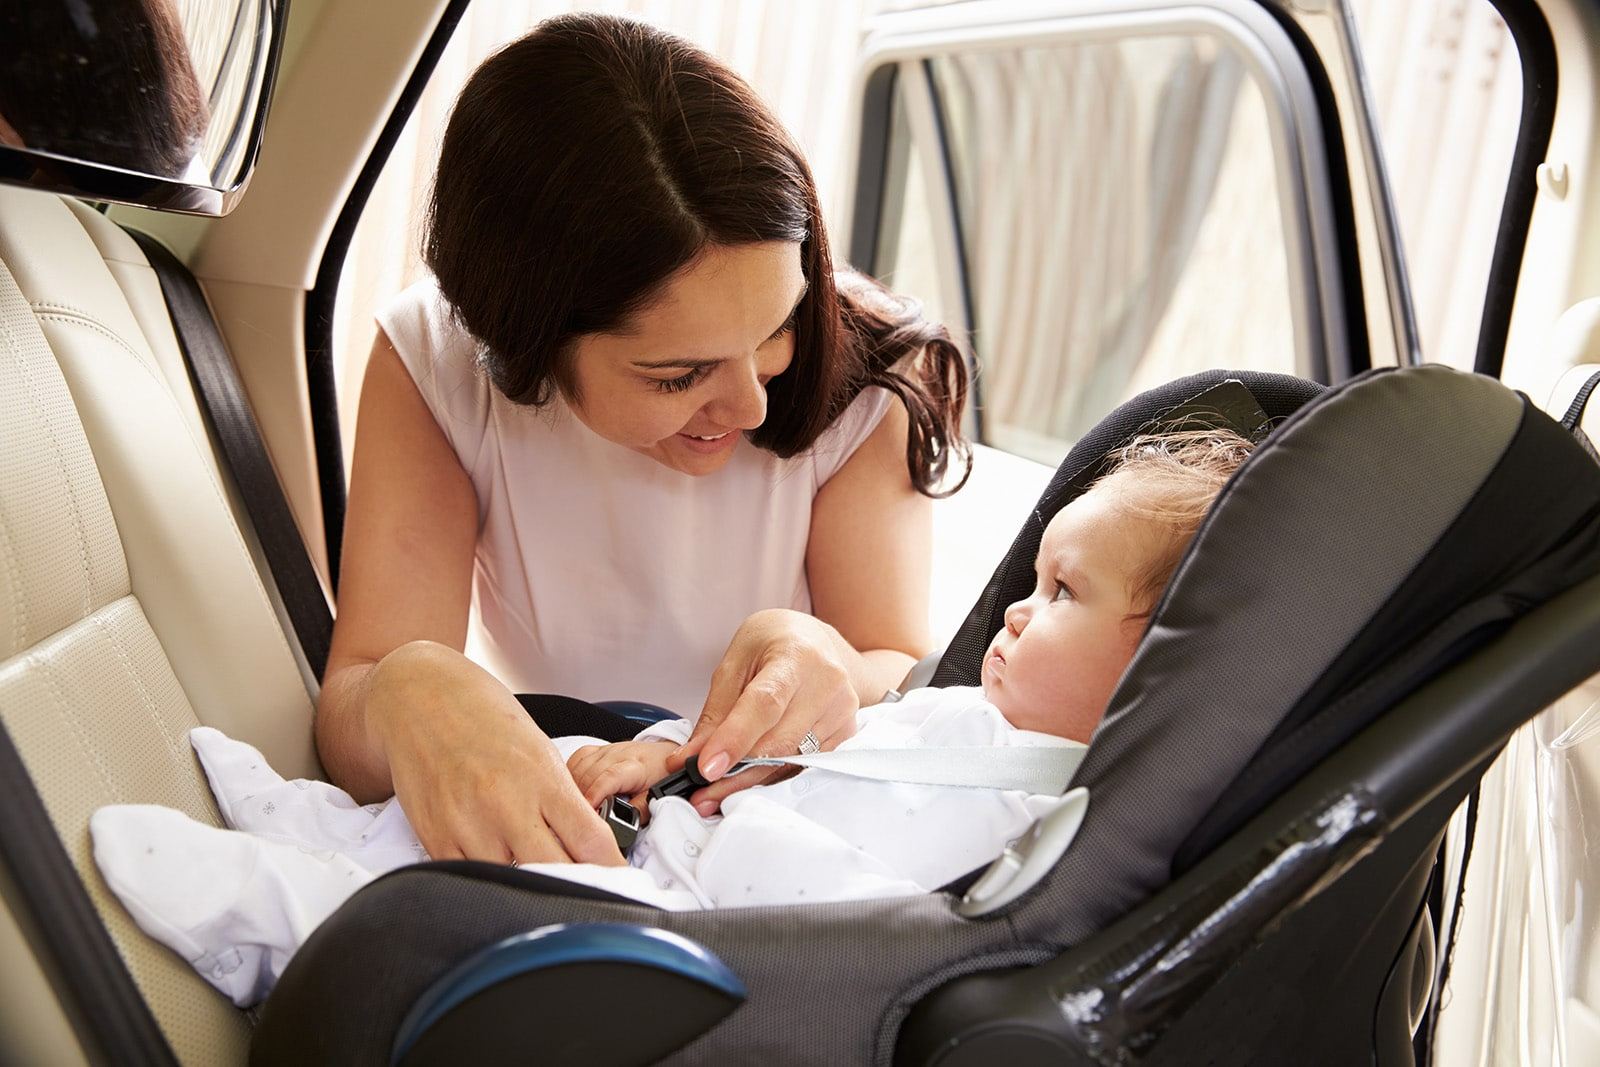 Incredible Updates For Child Safety Seats The Impact Of Texas Seat Unemploymentrelief Wooden Chair Designs For Living Room Unemploymentrelieforg